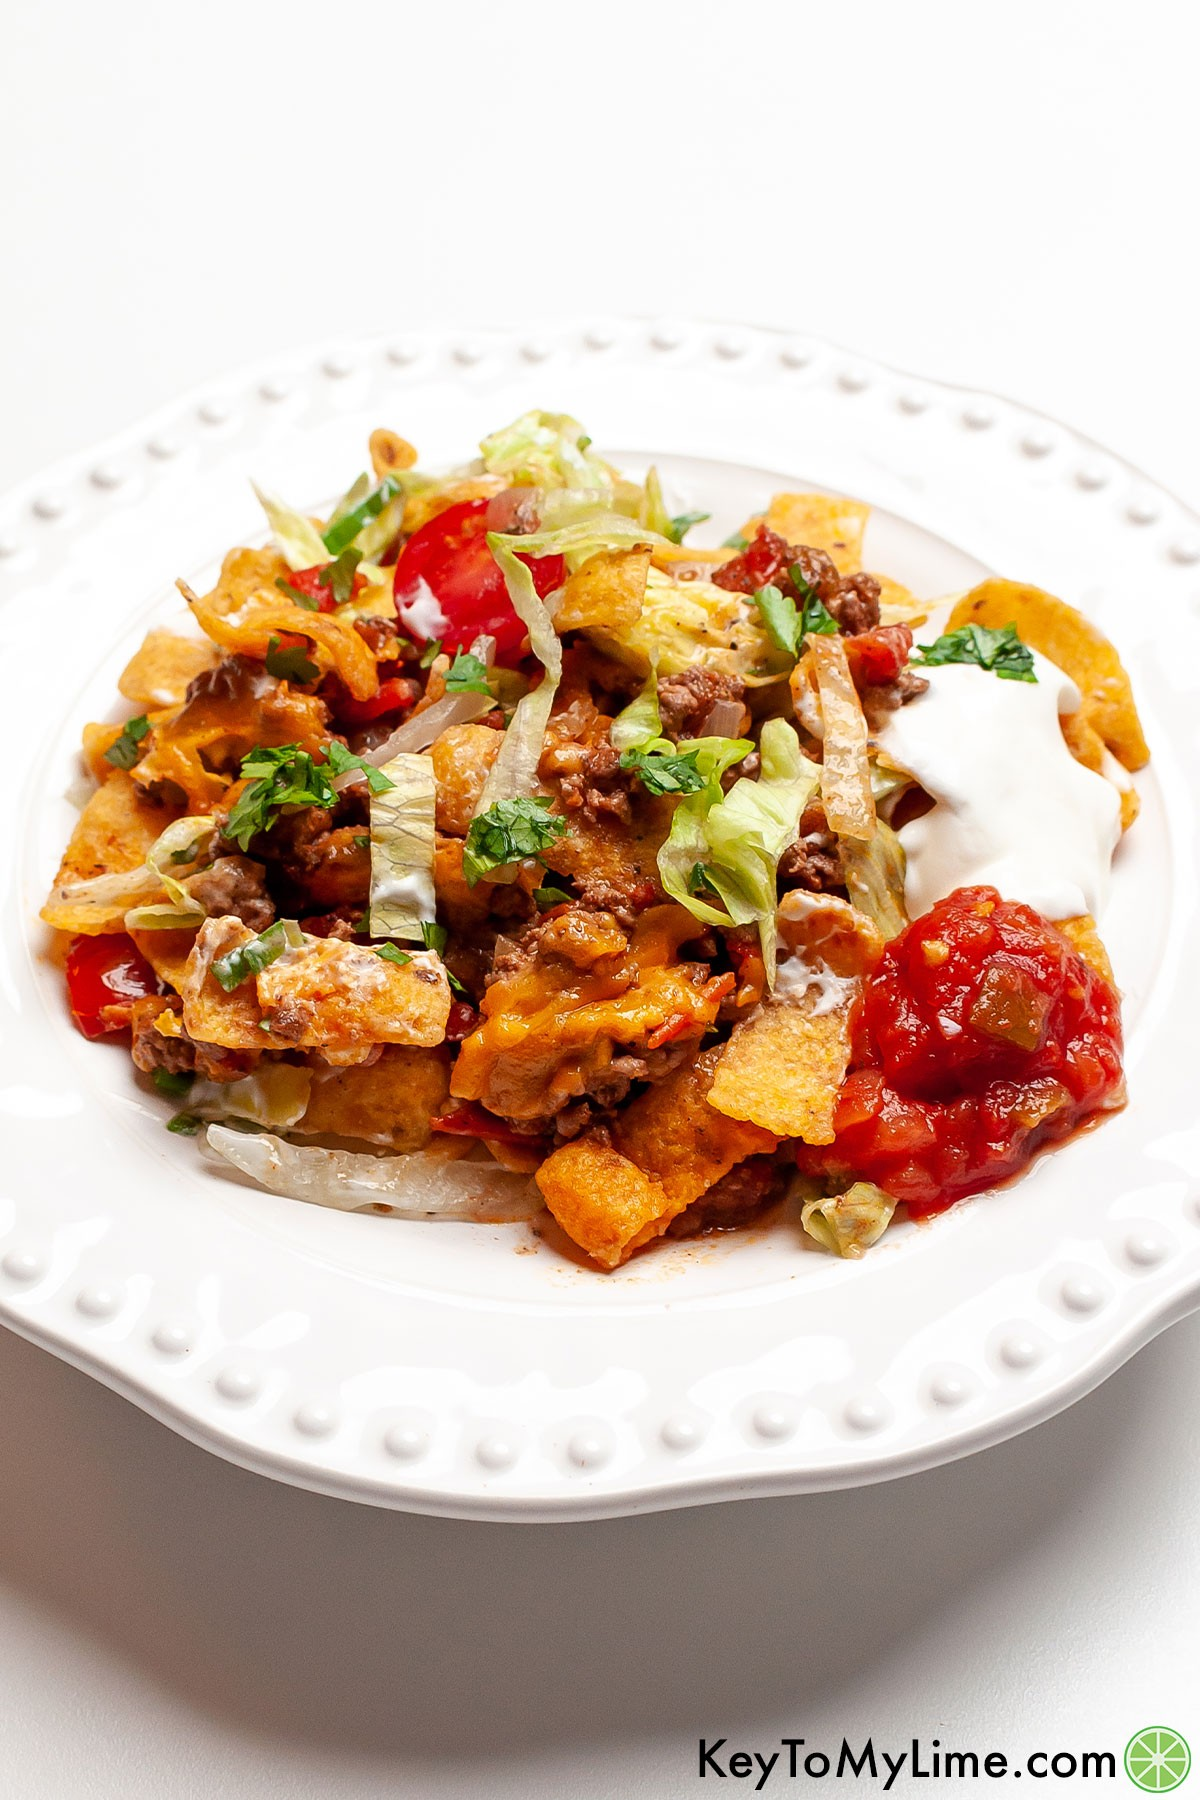 A serving of walking taco casserole on a white plate.